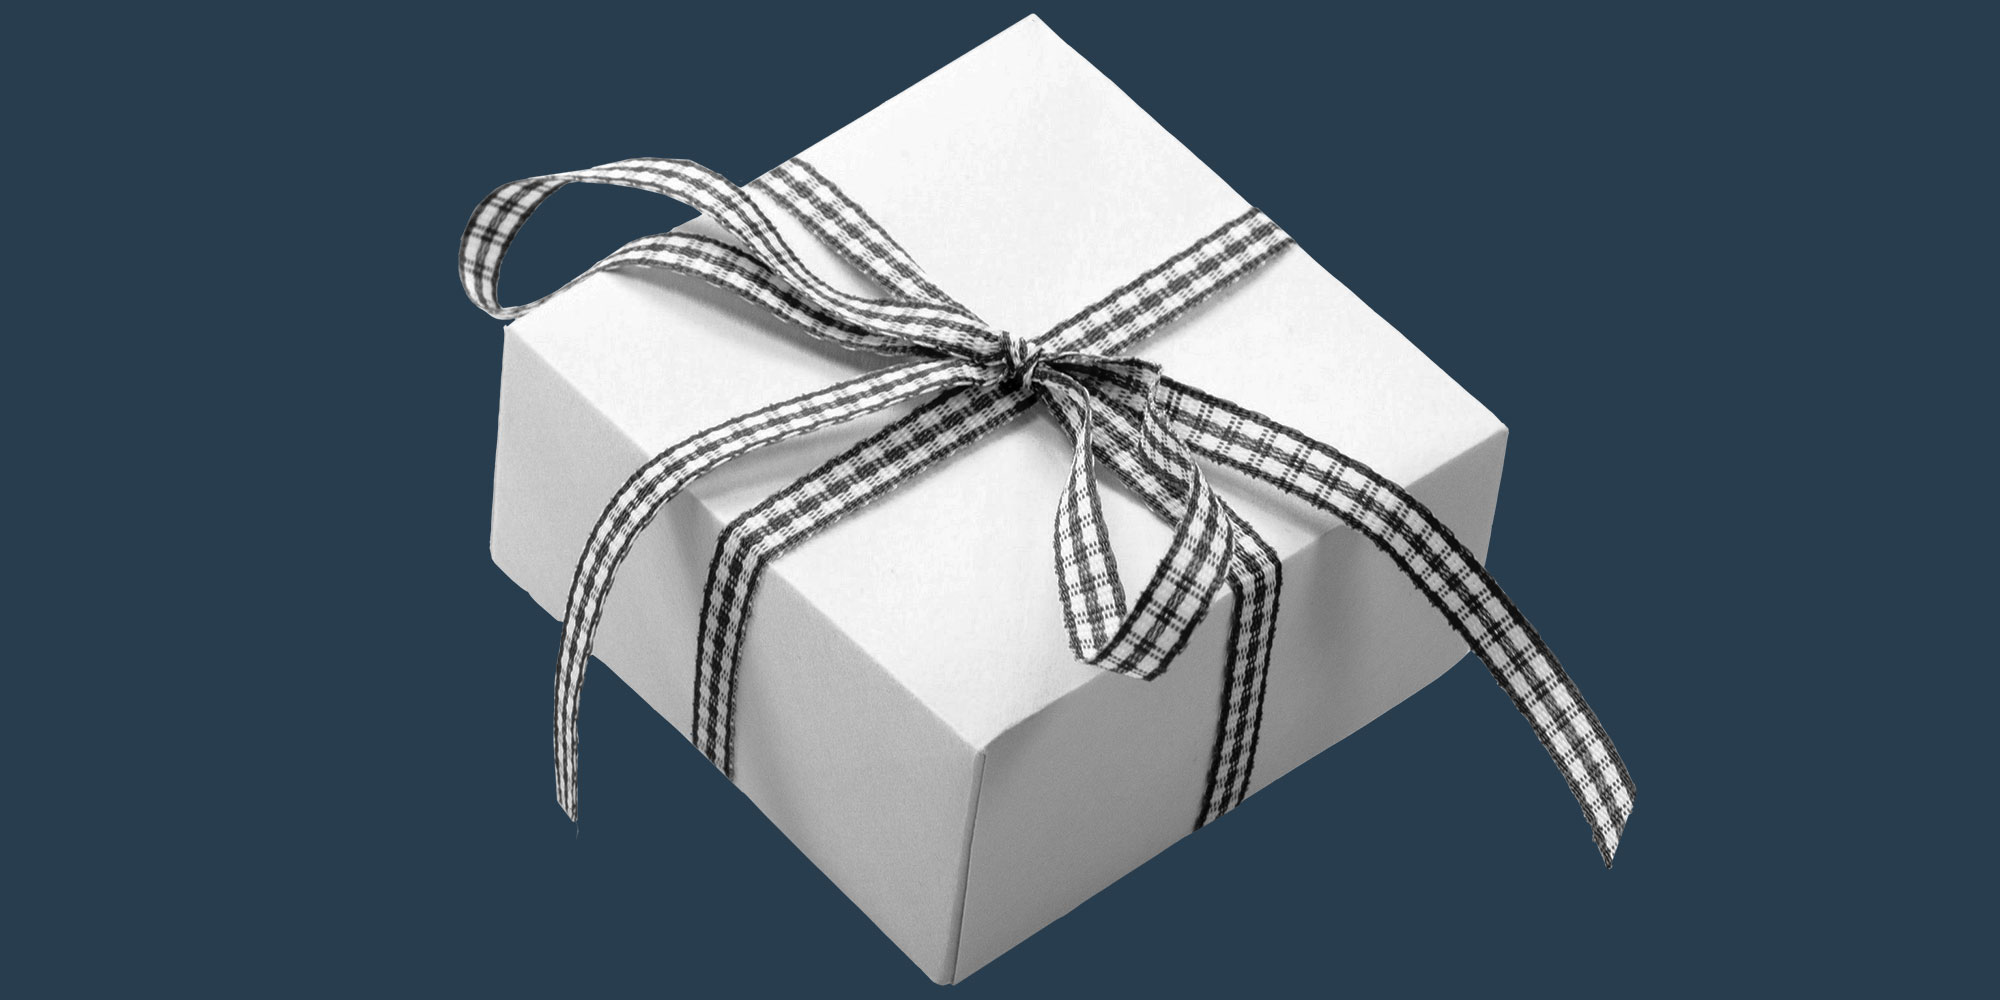 Wrapped gift with a gingham bow